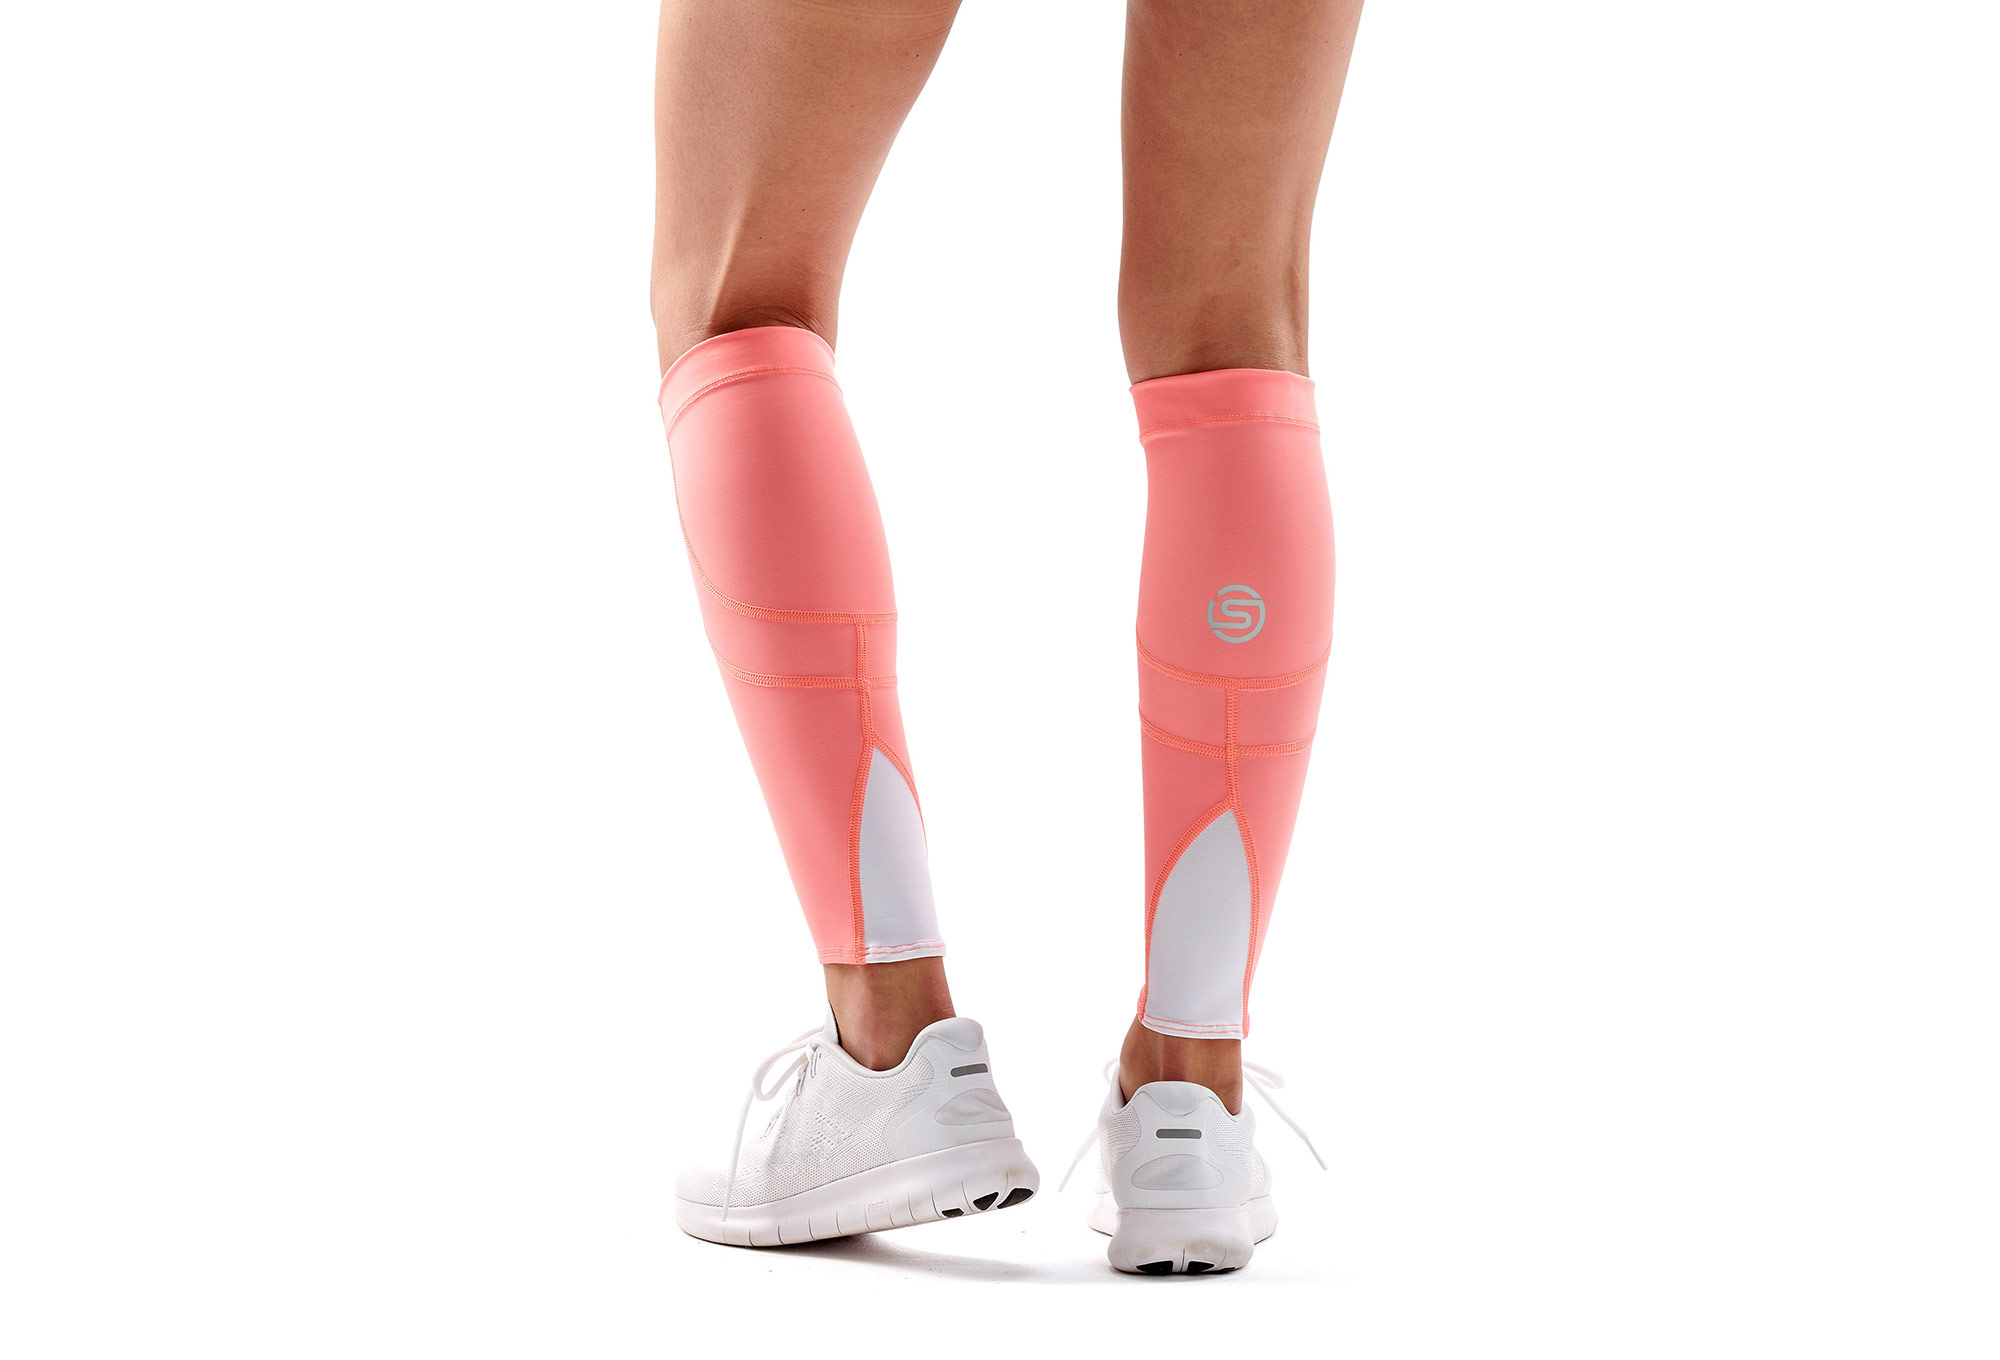 skins calf tights mx size guide